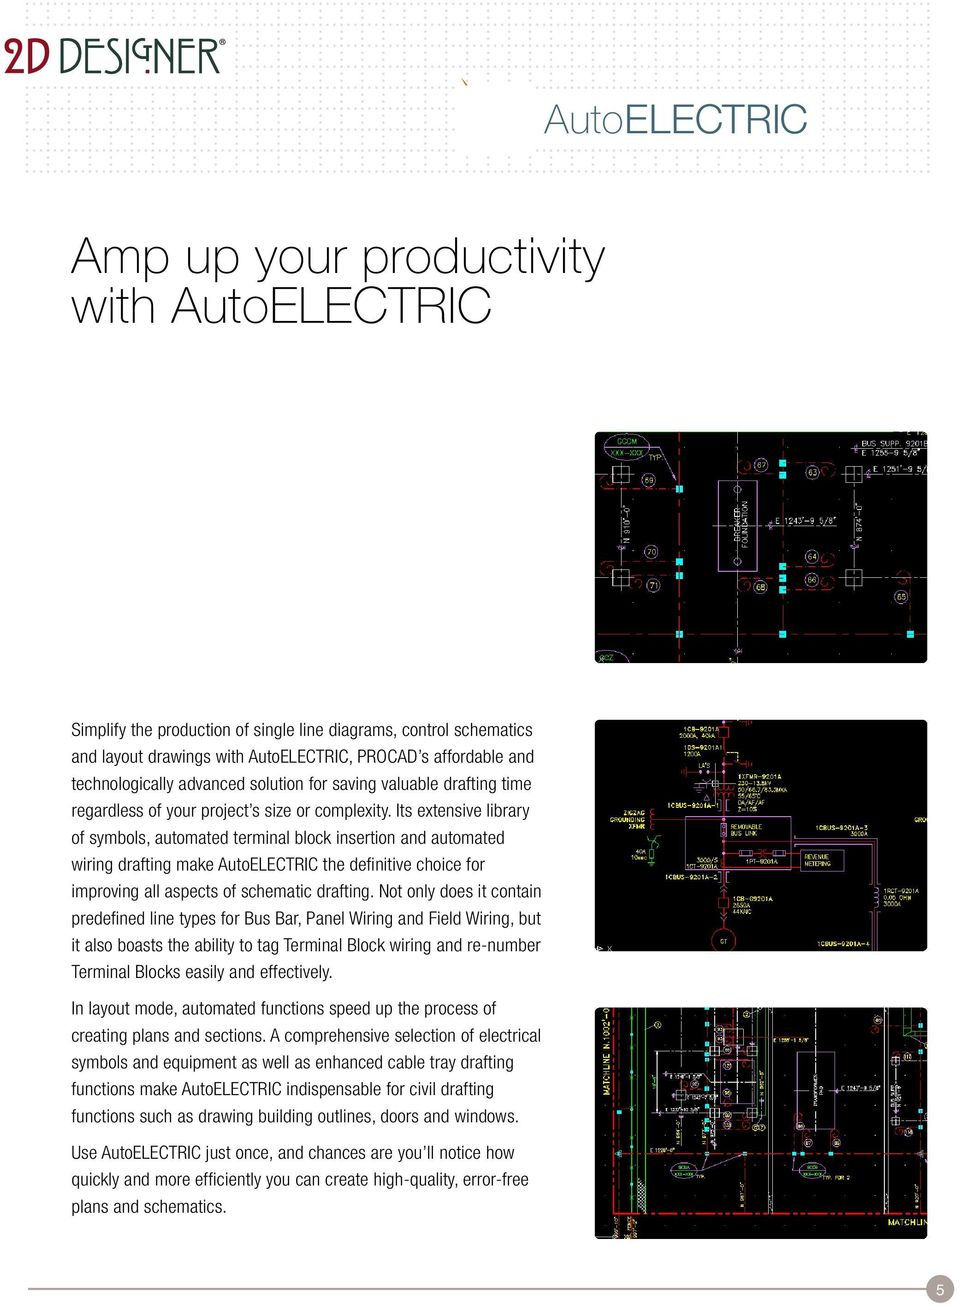 Its extensive library of symbols, automated terminal block insertion and automated wiring drafting make AutoELECTRIC the definitive choice for improving all aspects of schematic drafting.